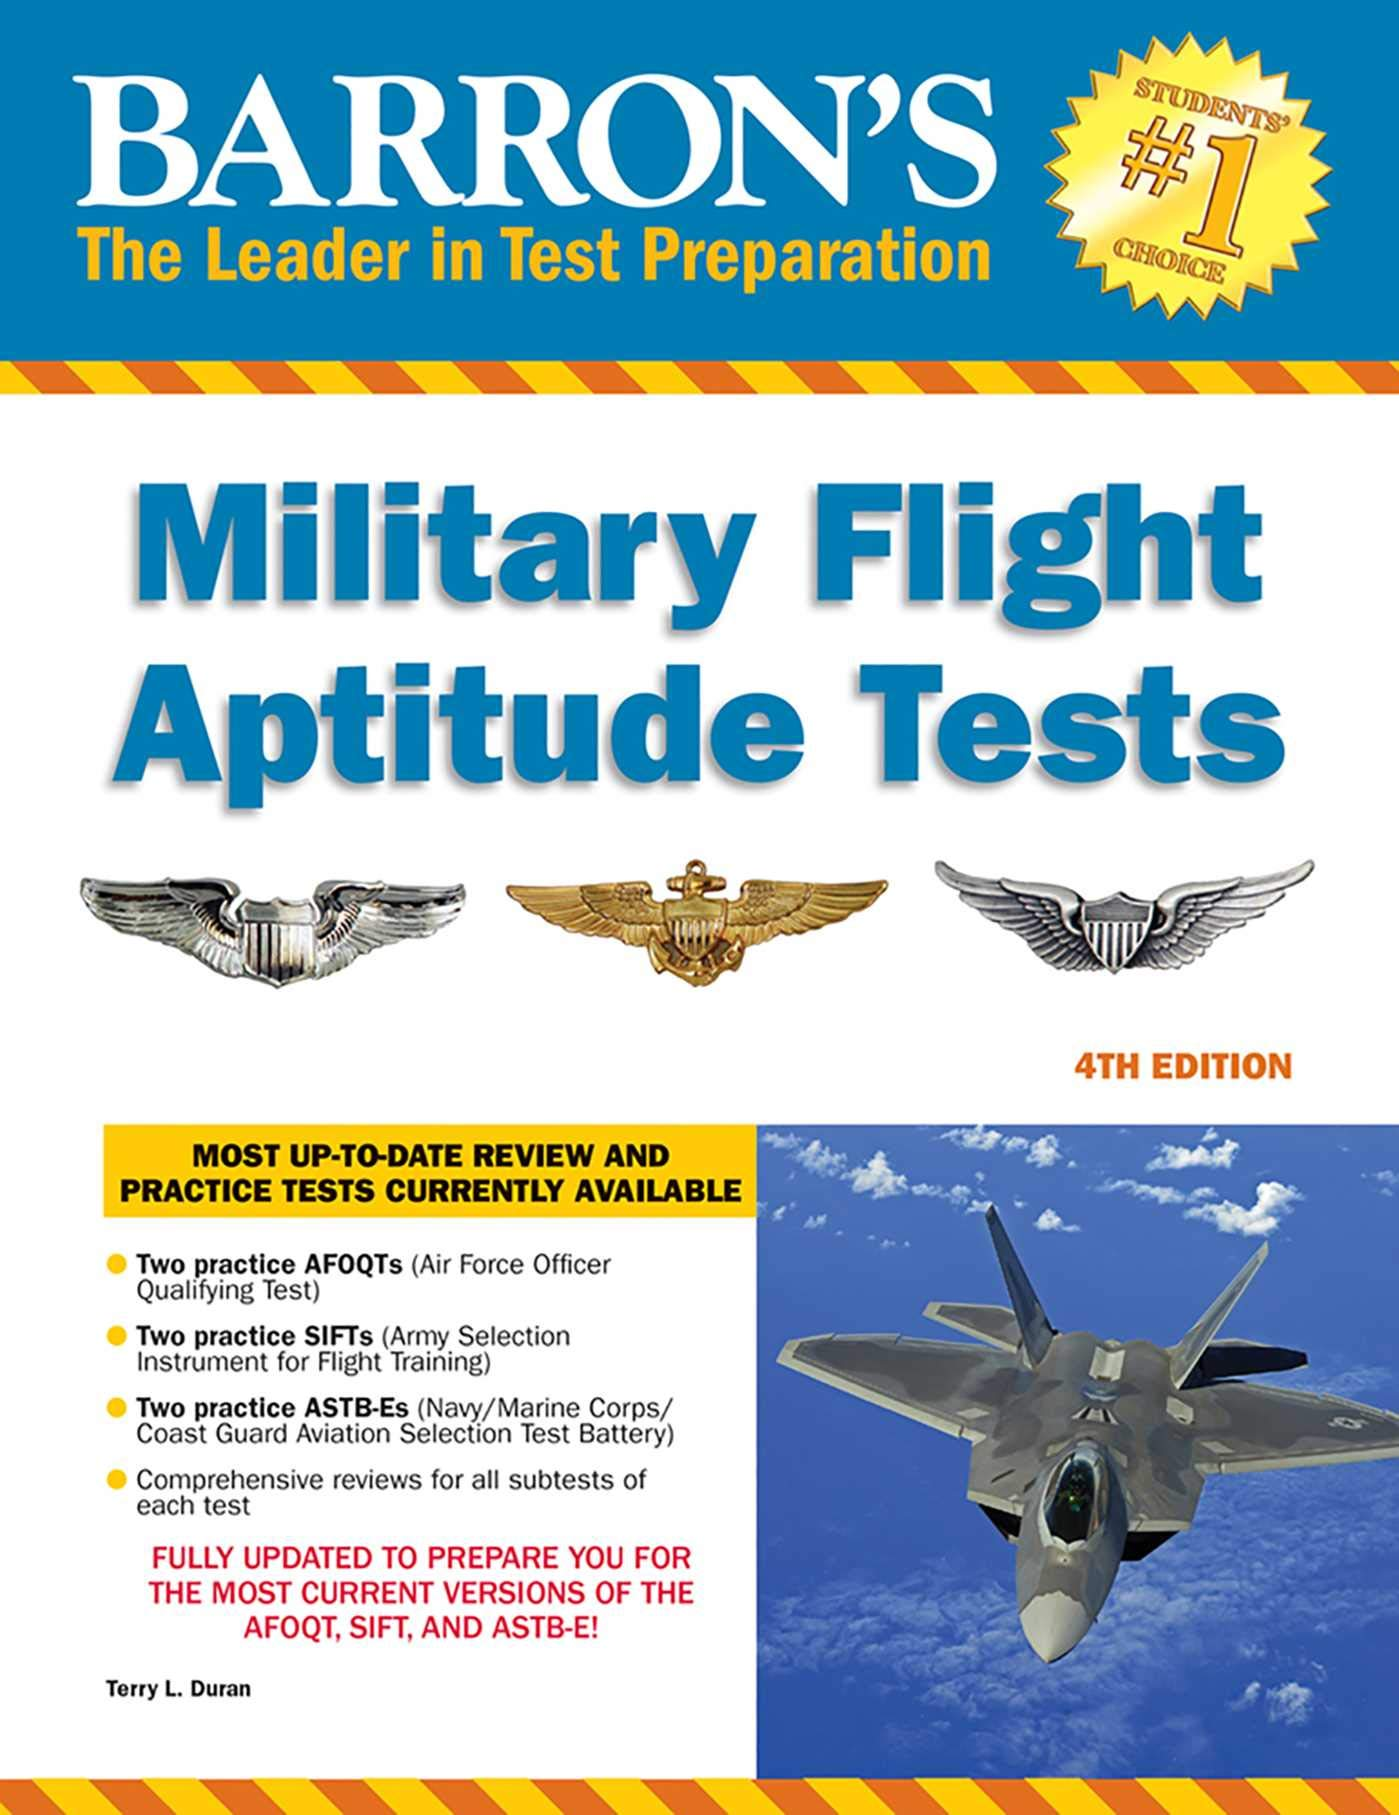 Image OfMilitary Flight Aptitude Tests (Barron's Military Flight Aptitude Tests)